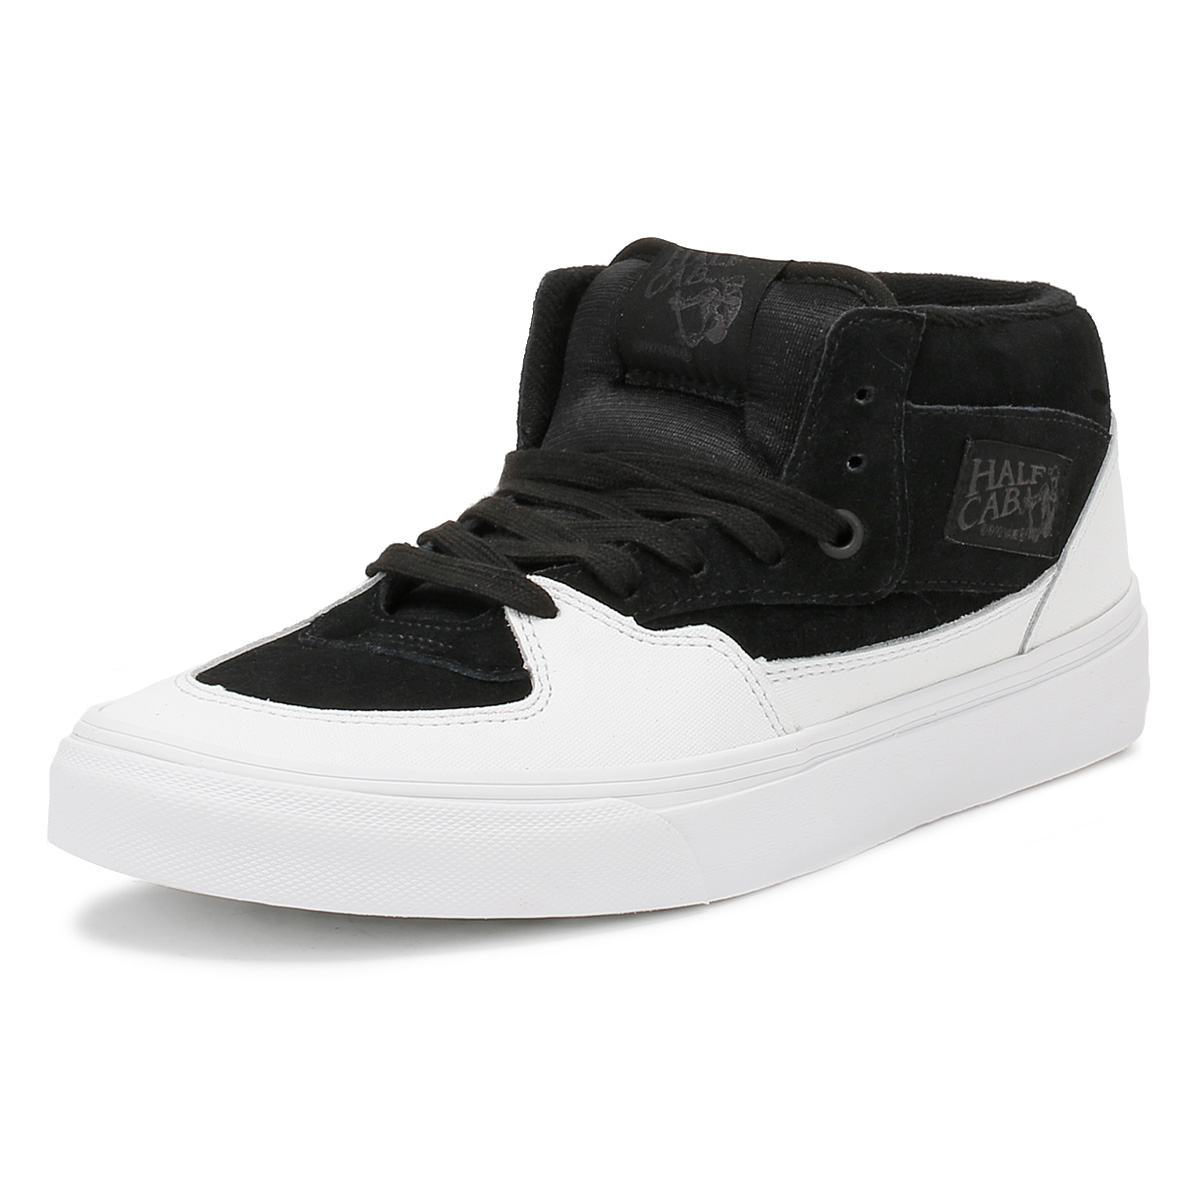 e6a10f6a9d2e Details about Vans Mens Trainers Dipped Black   True White Half Cab Lace Up  Skater Shoes